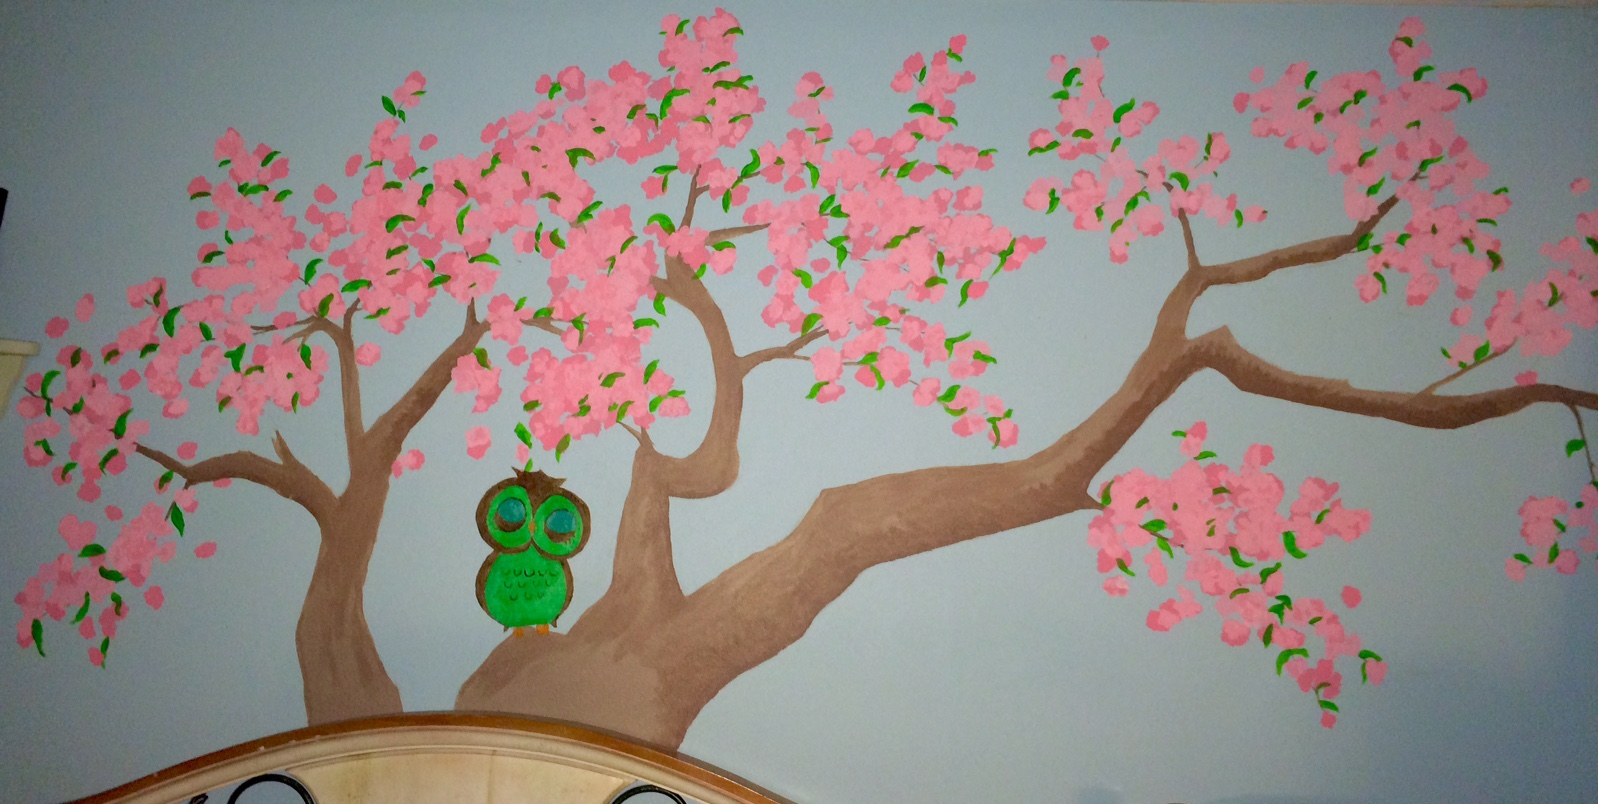 This is a mural I did on a bedroom wall.